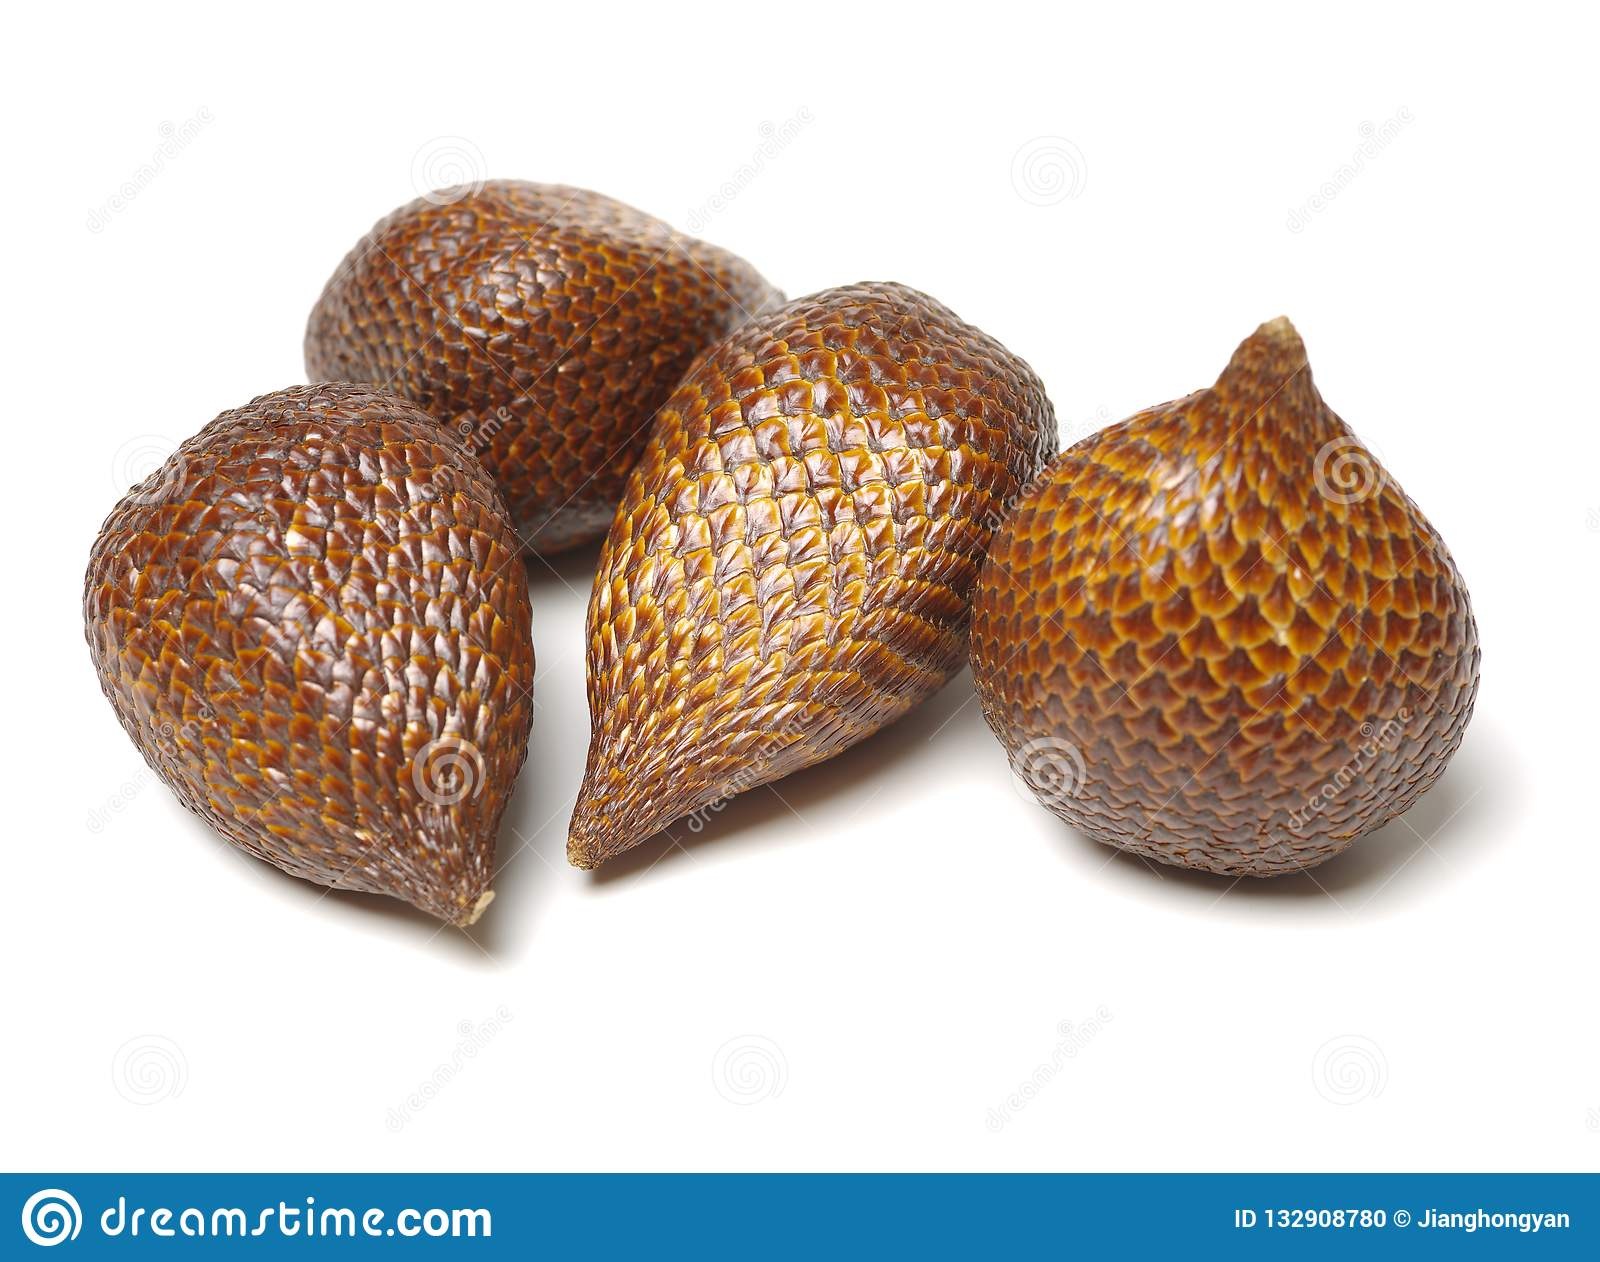 Alocal Fruit Indigenous In Indonesia And Malaysia , Sometime Known